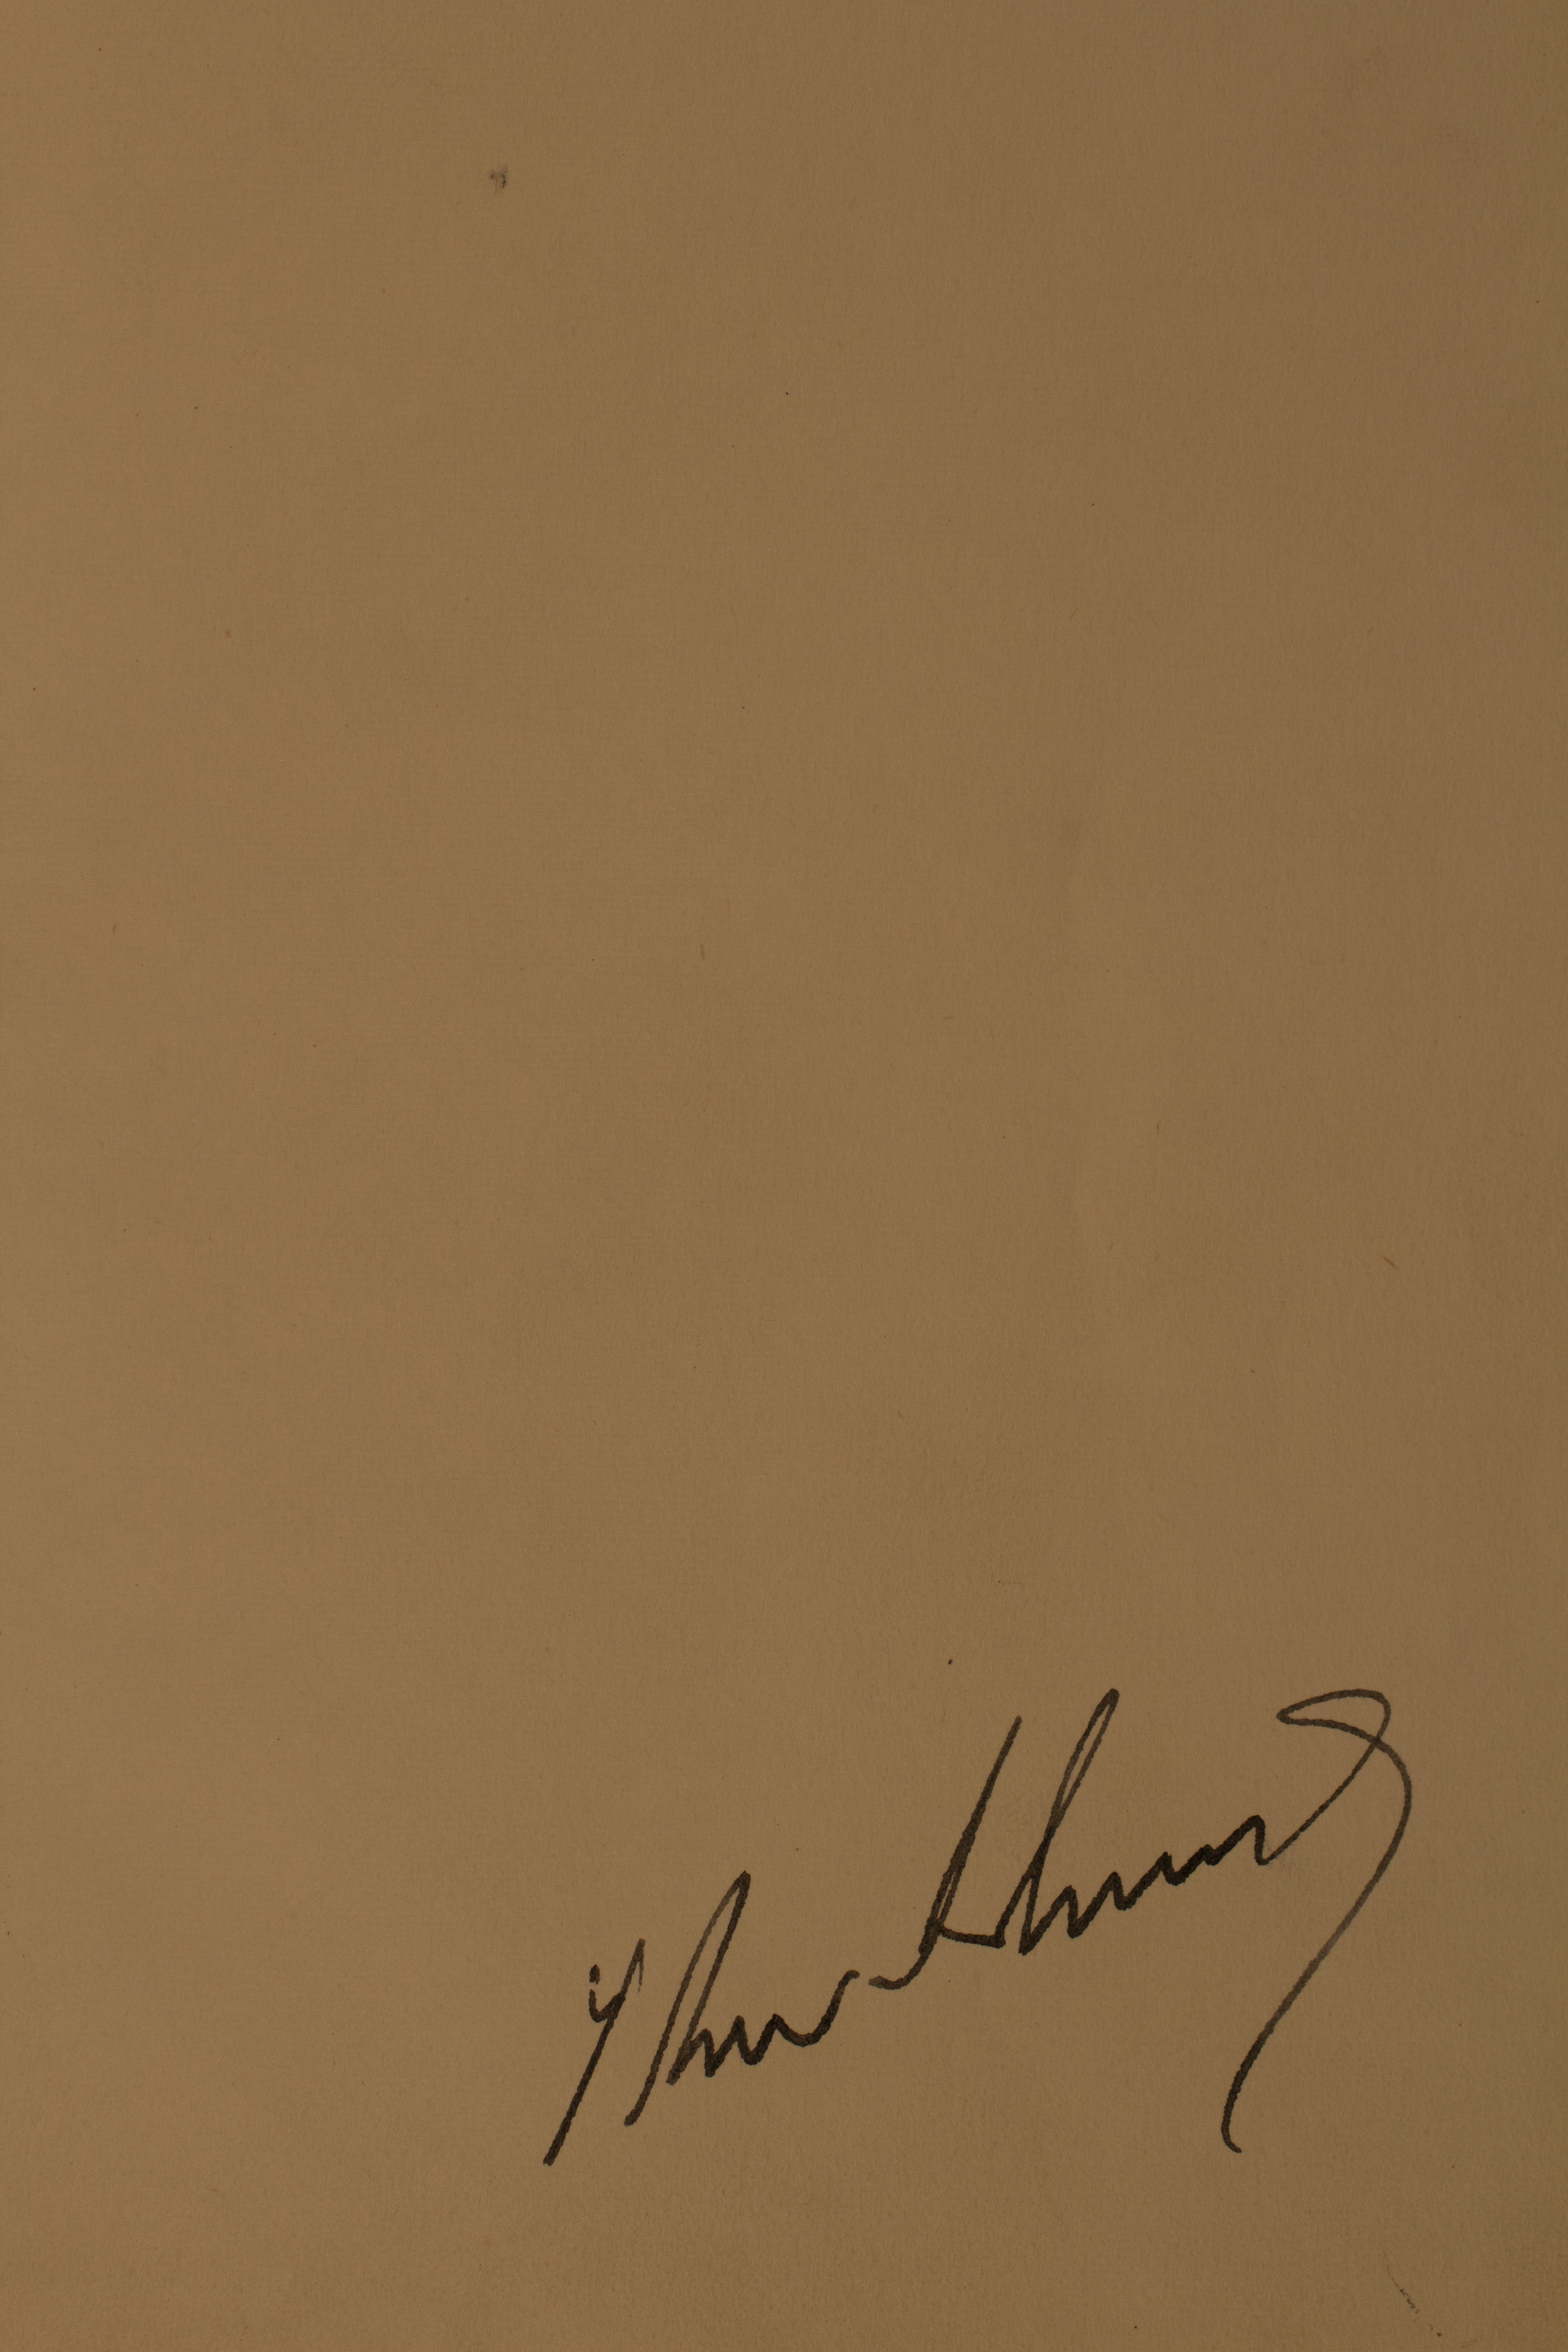 President Kennedy's Signature